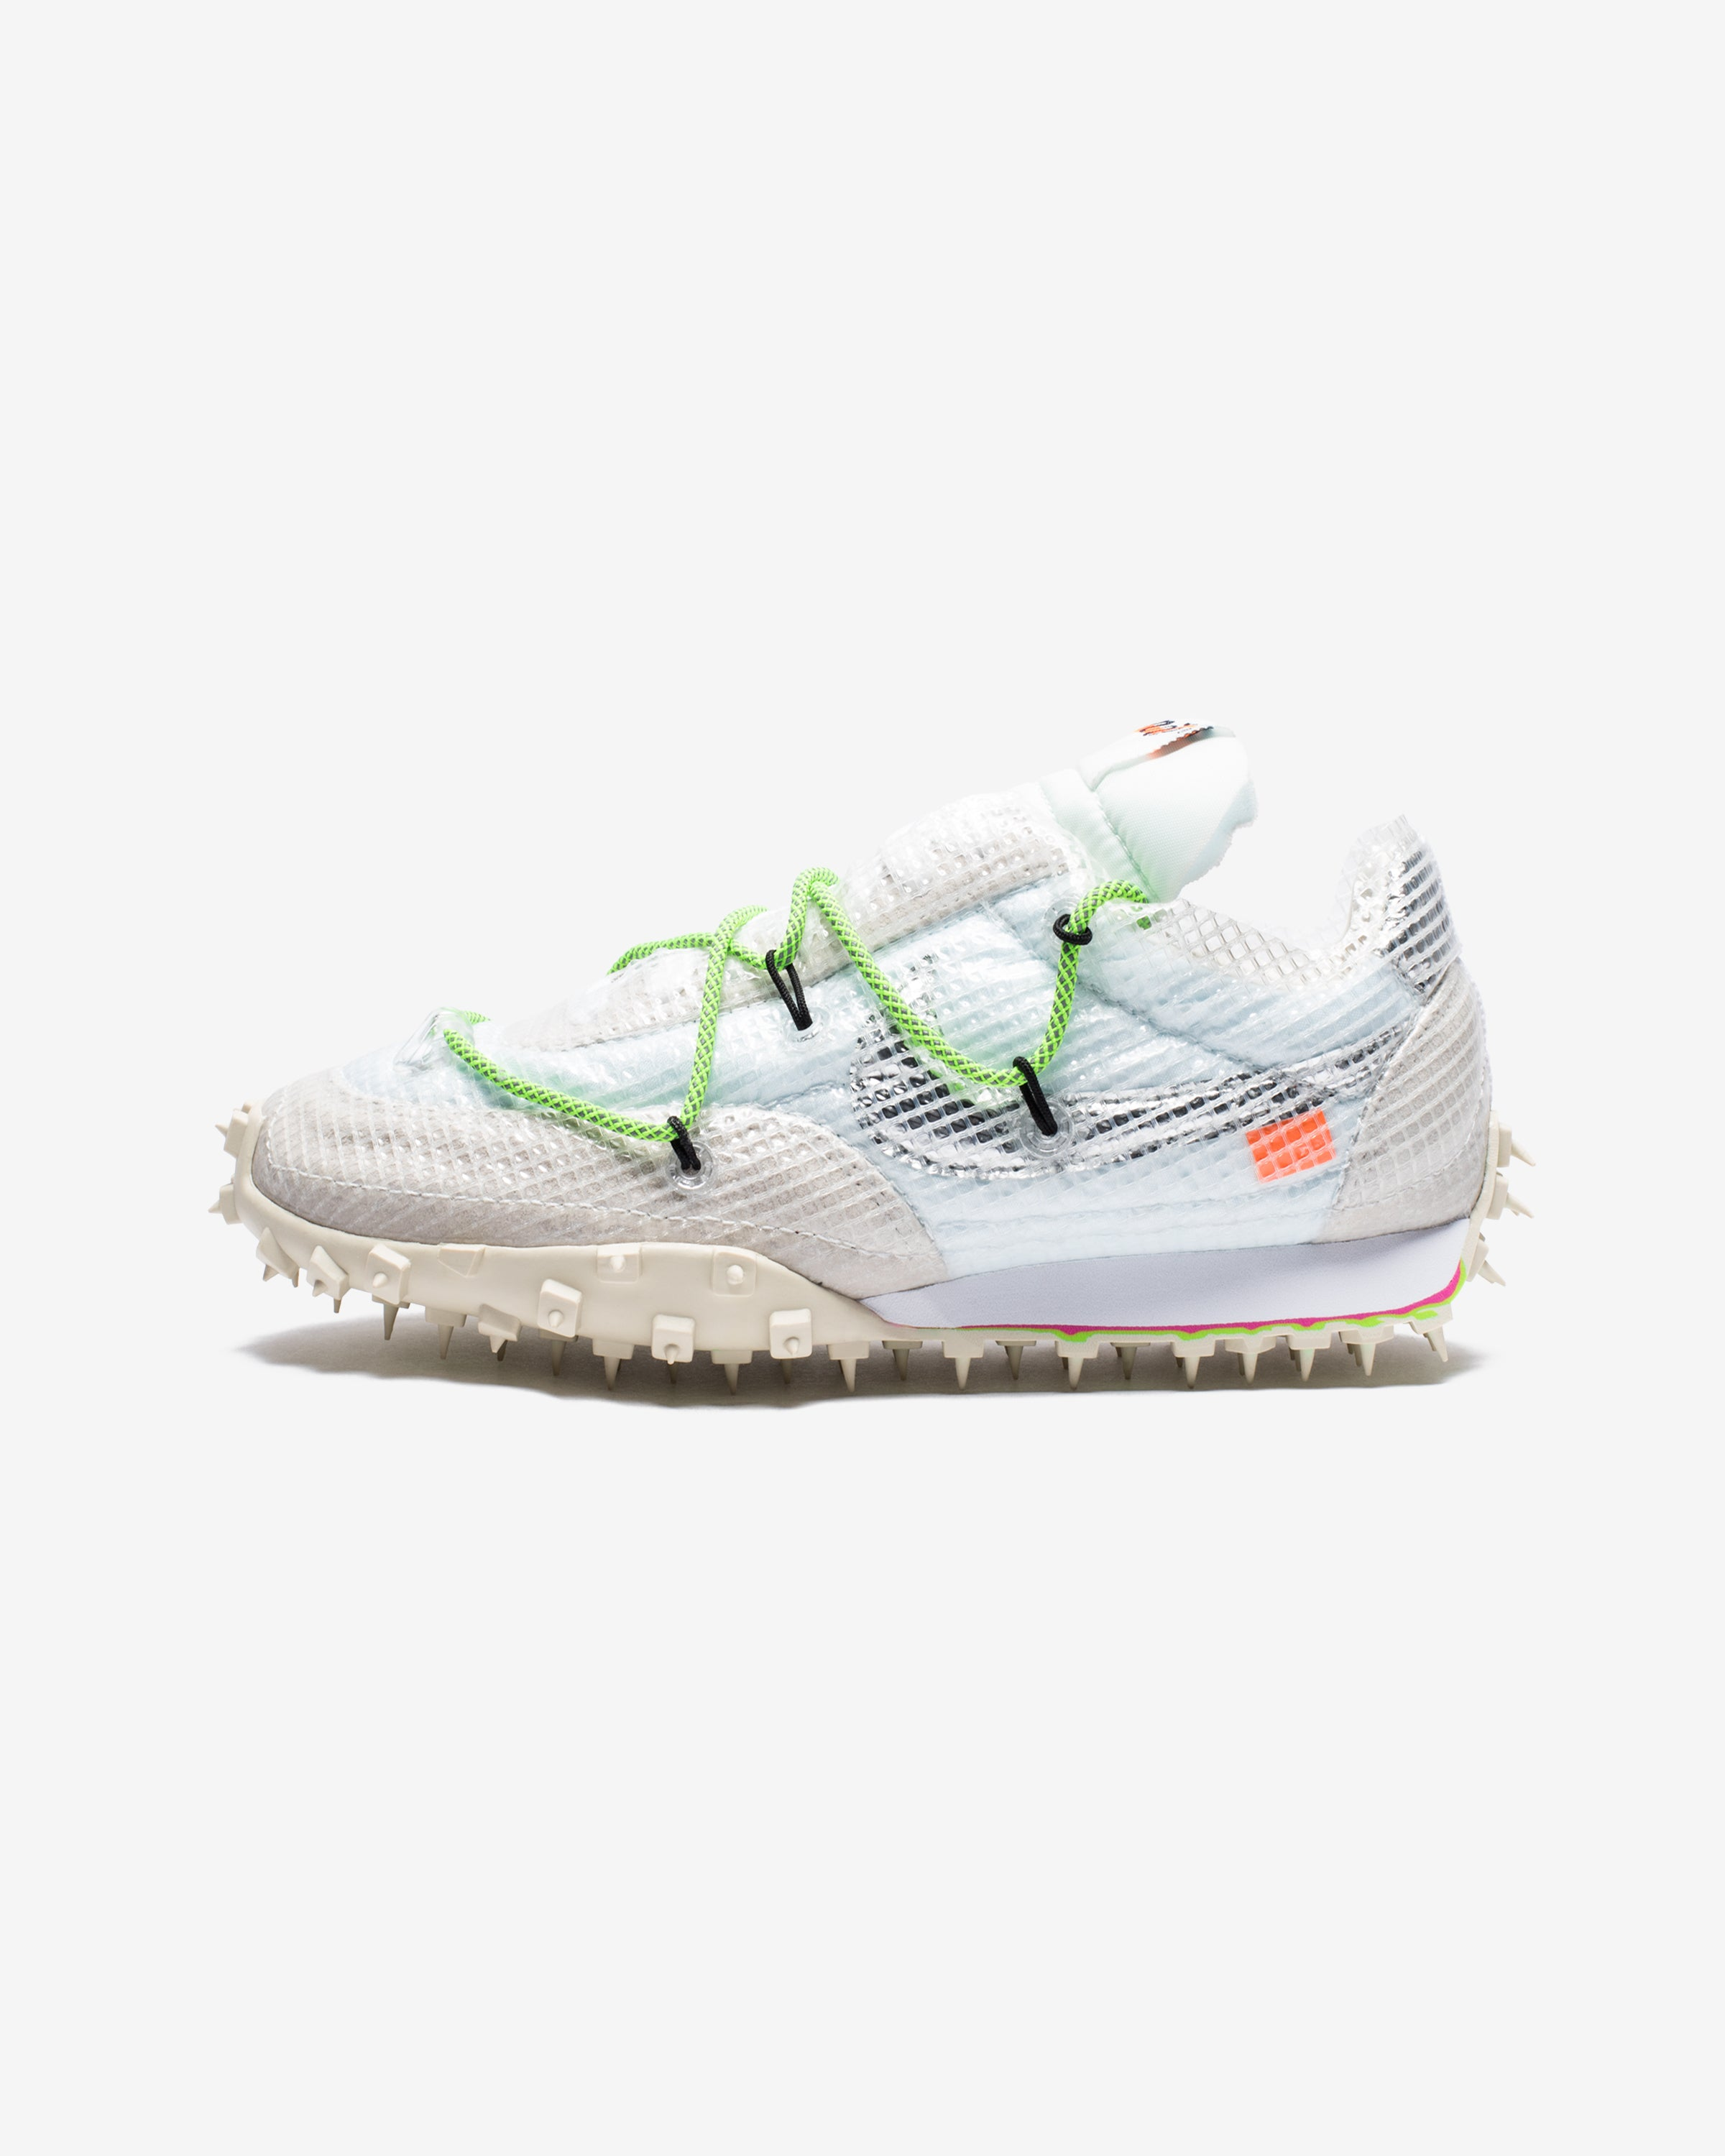 NIKE X OFF-WHITE WOMEN'S WAFFLE RACER - WHITE/ELECTRICGREEN